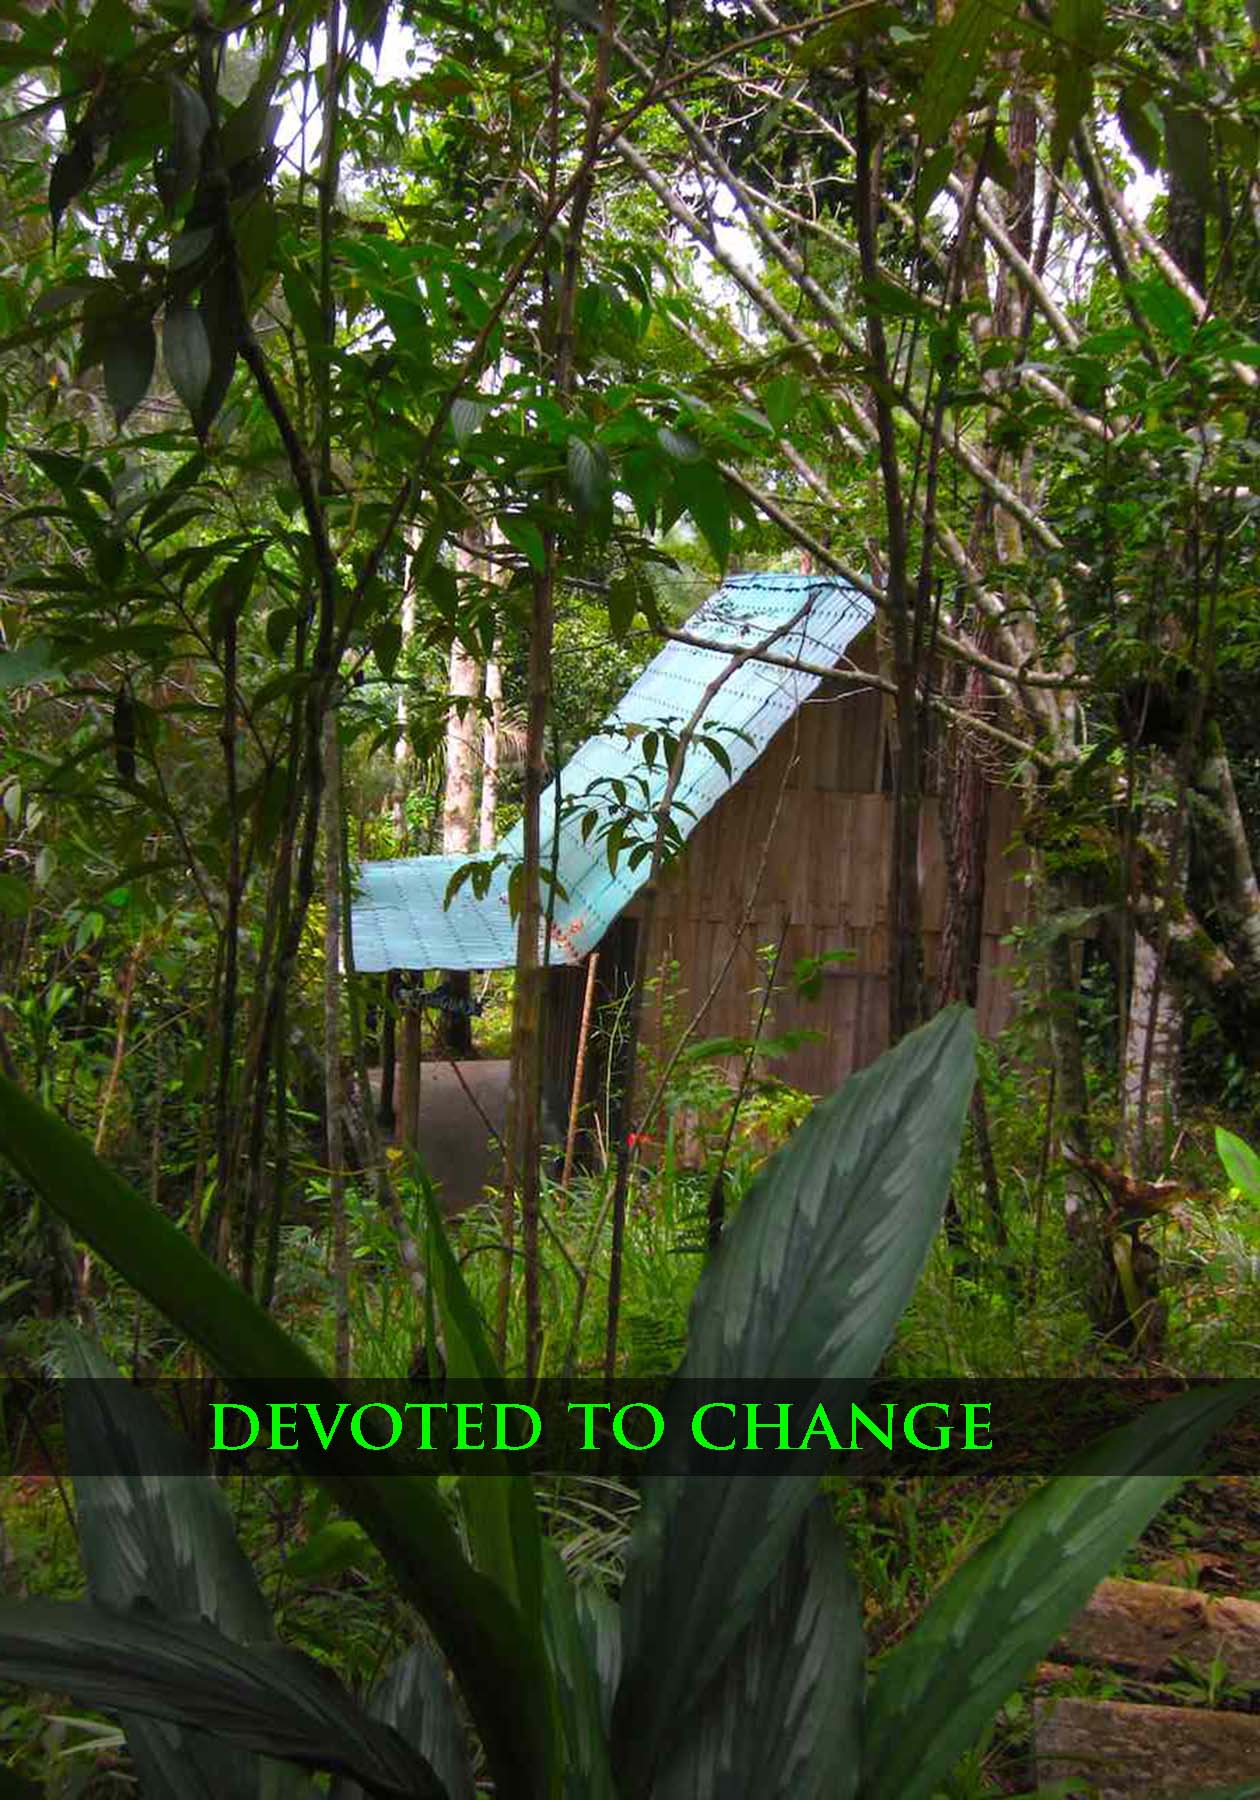 devoted to change